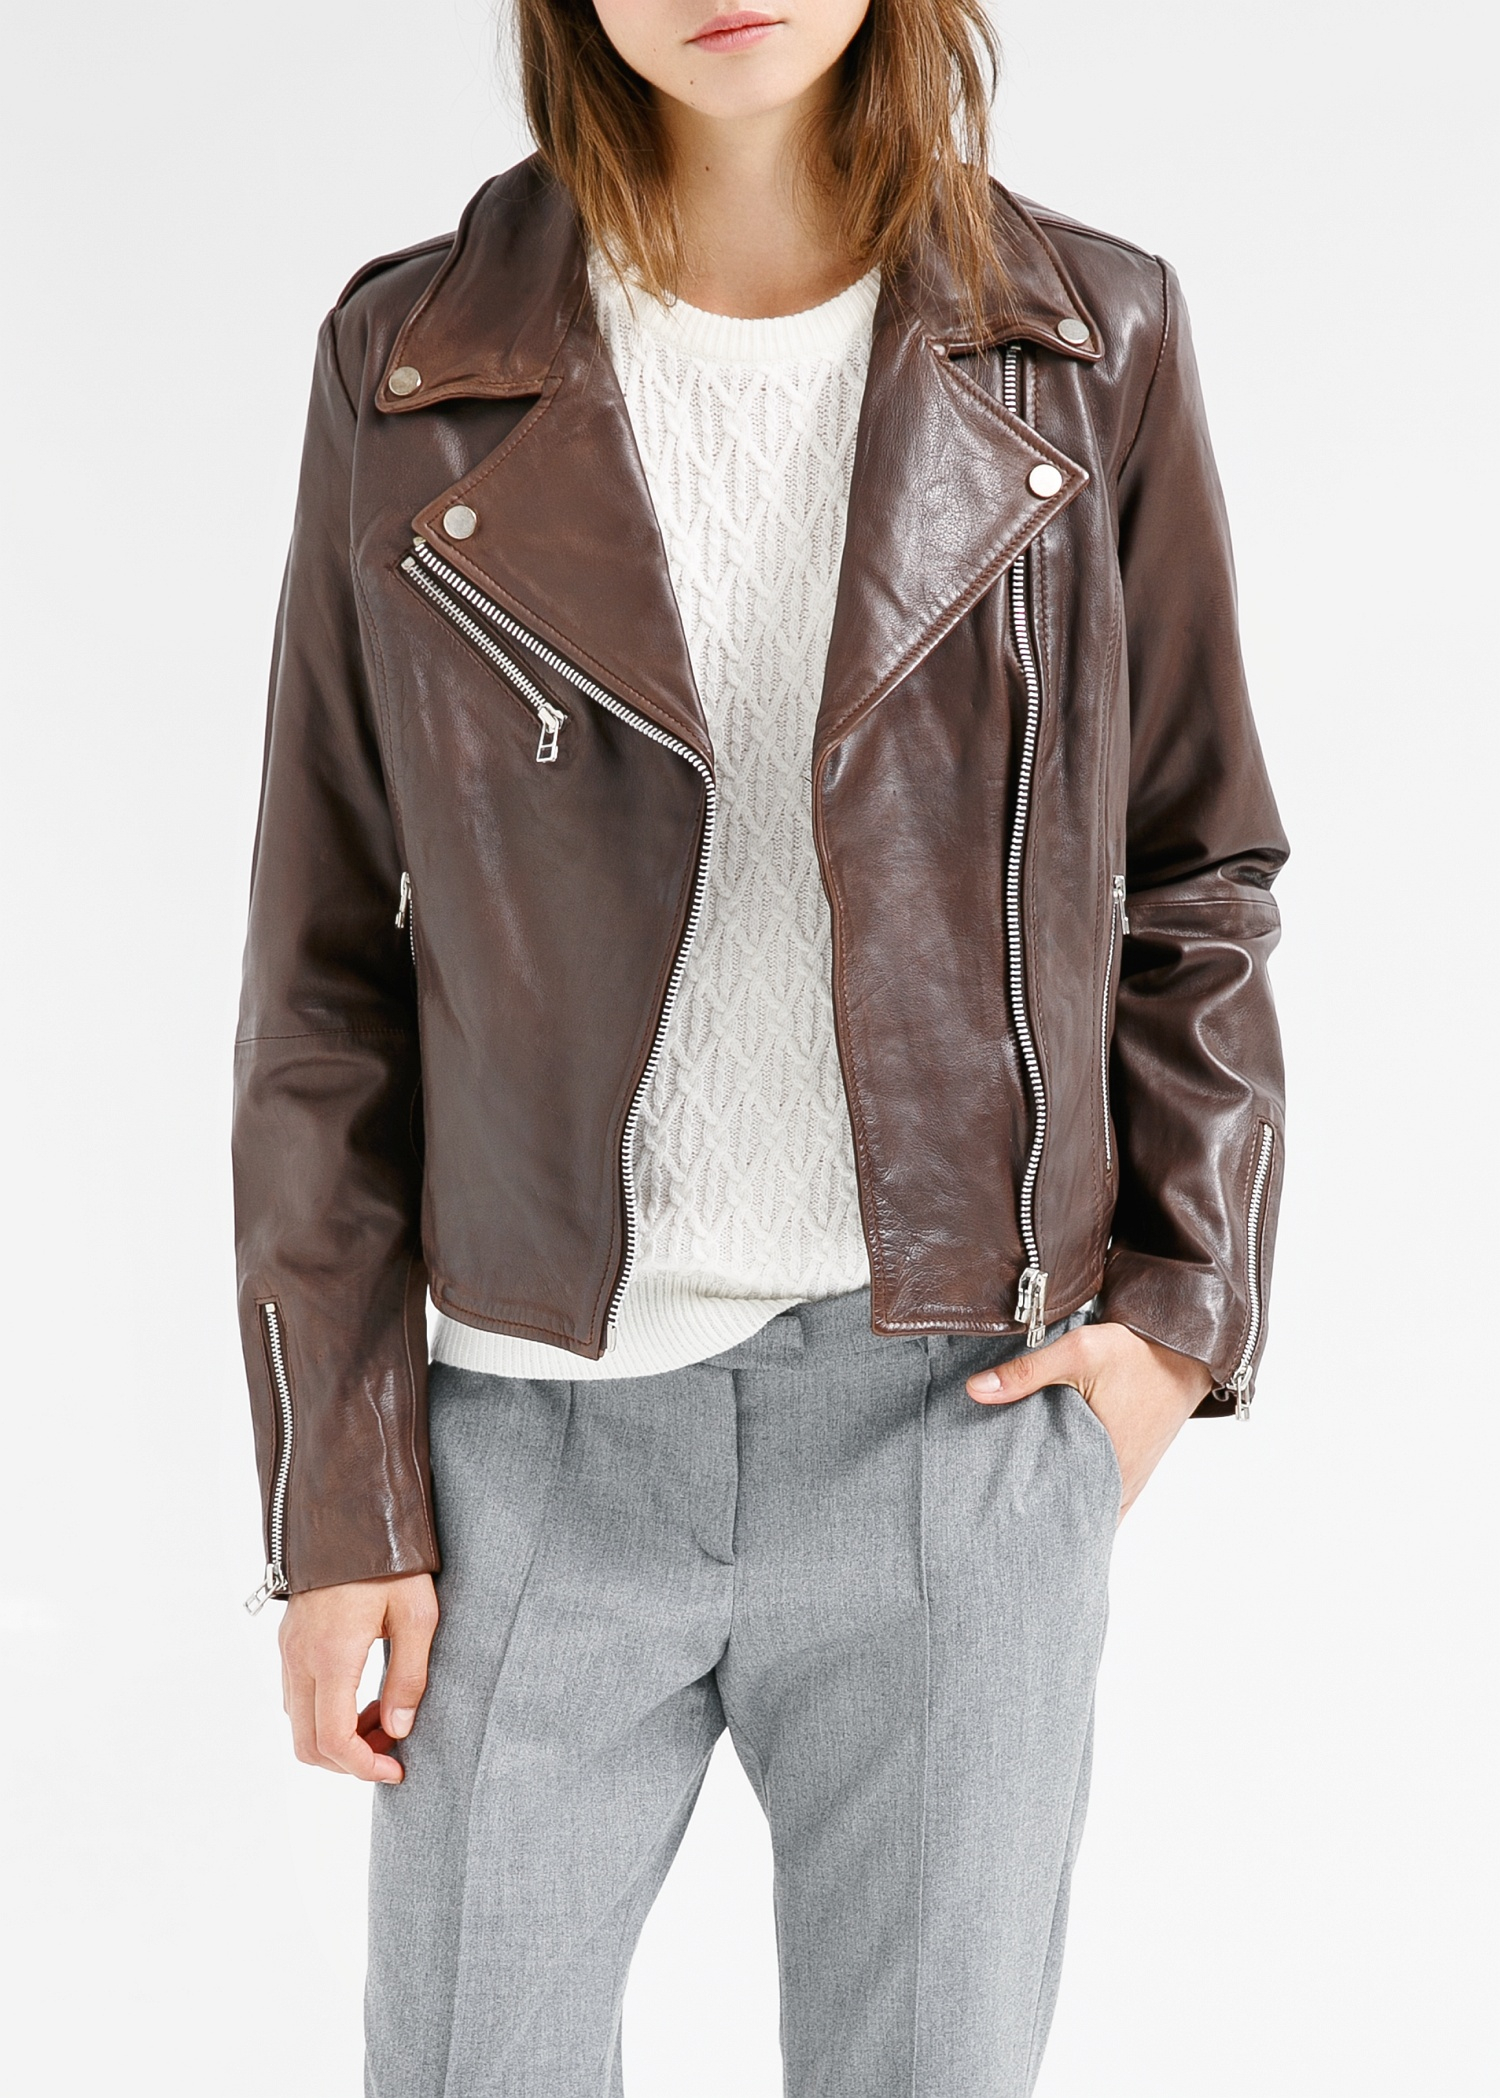 Chocolate Brown Leather Jacket - Jacket